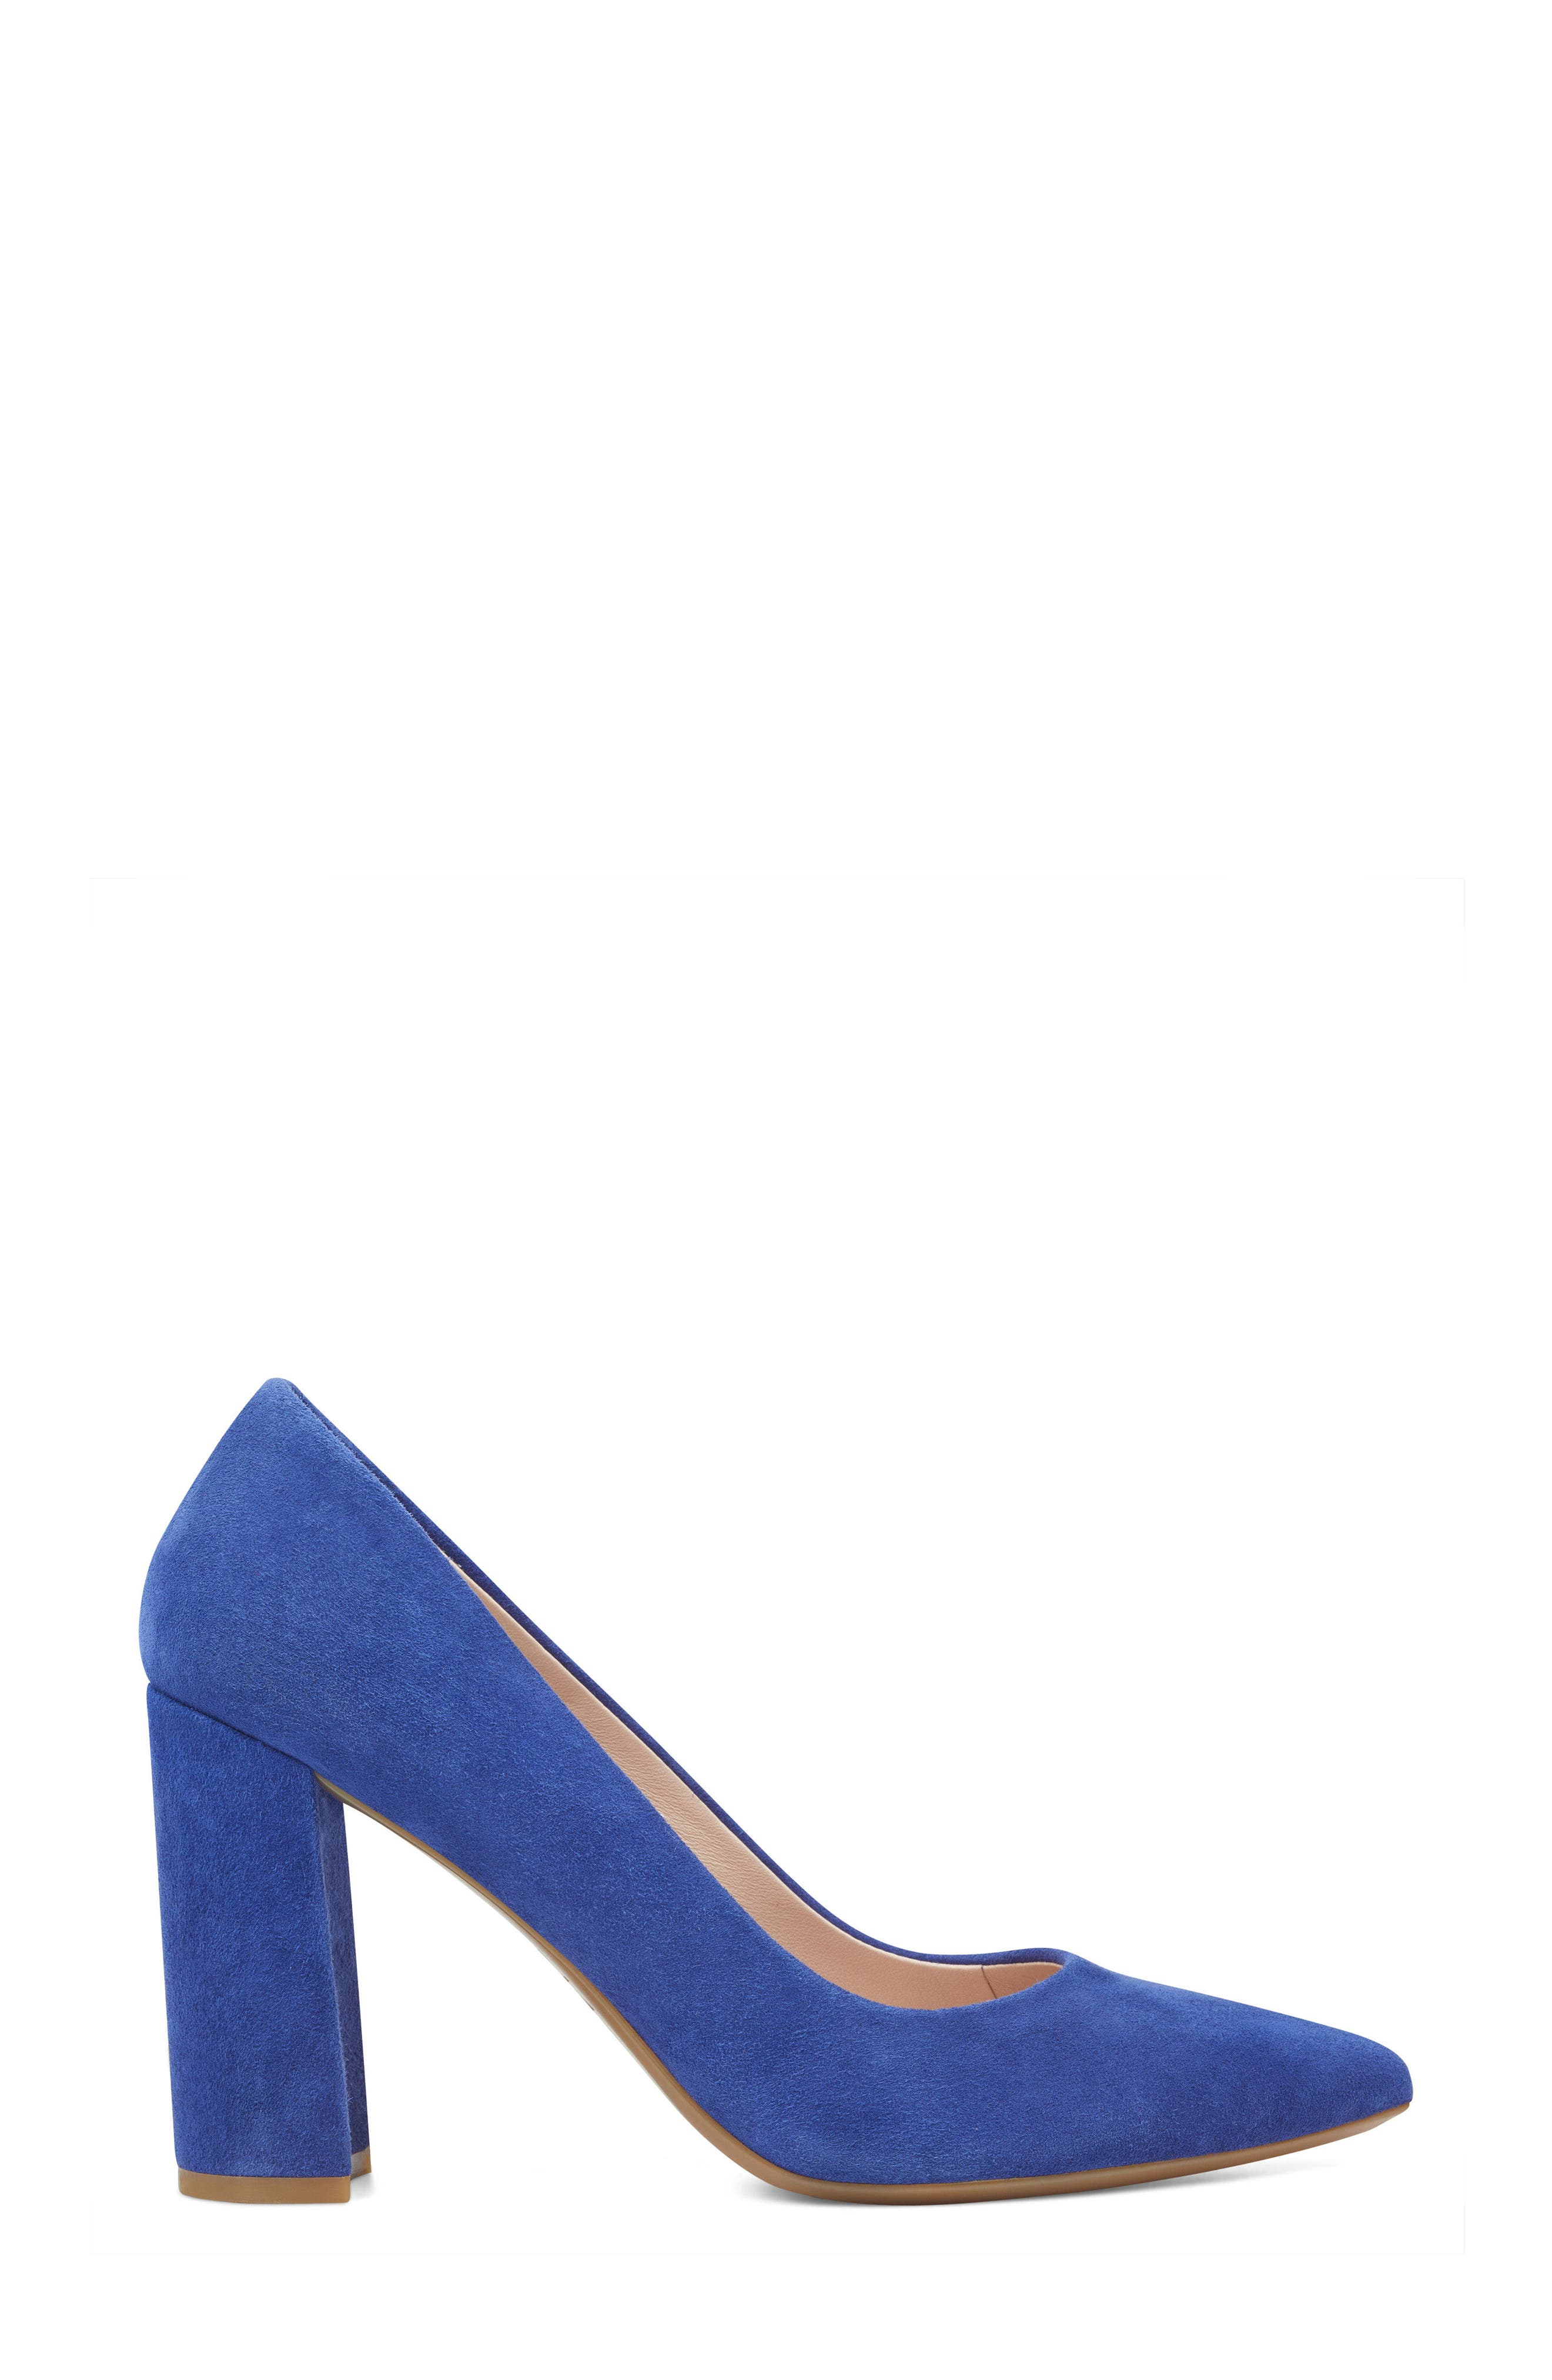 Astoria Pump,                             Alternate thumbnail 3, color,                             DARK BLUE SUEDE